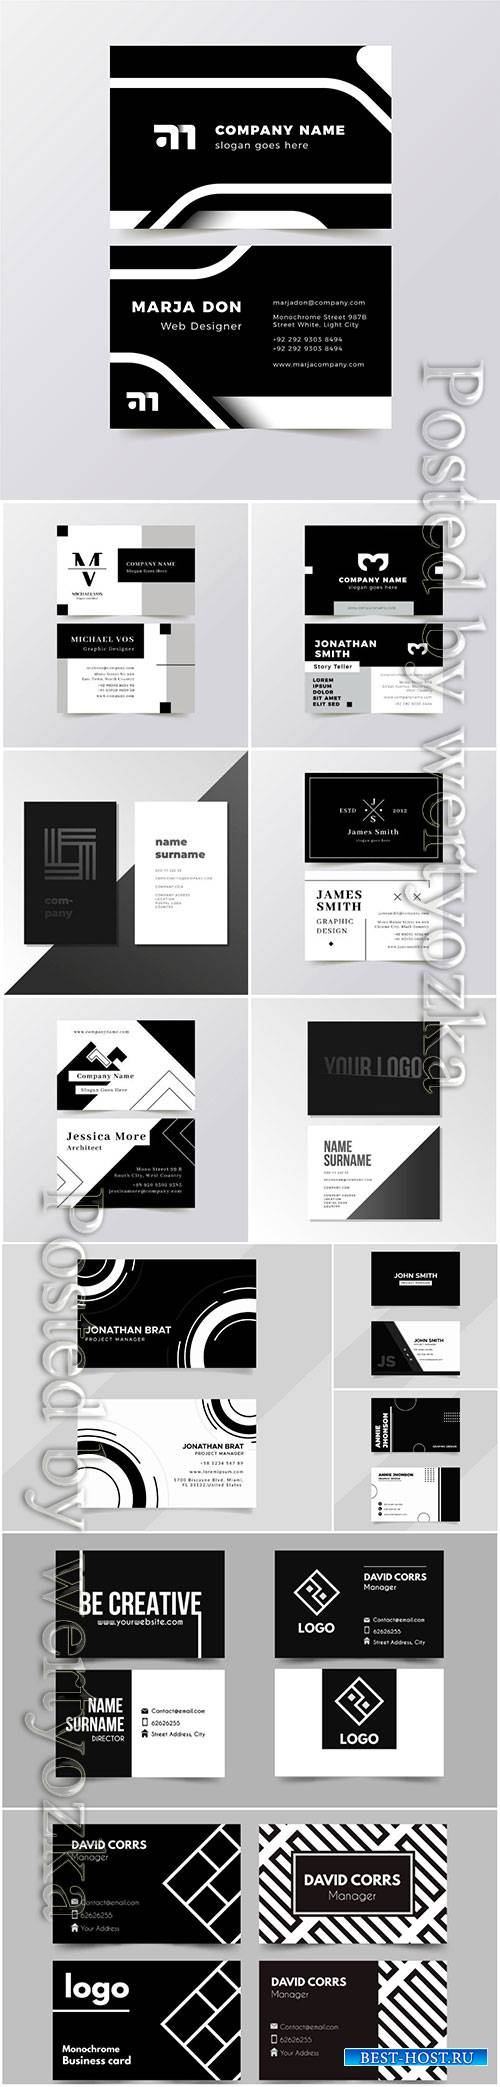 Business cards in black white style, vector templates